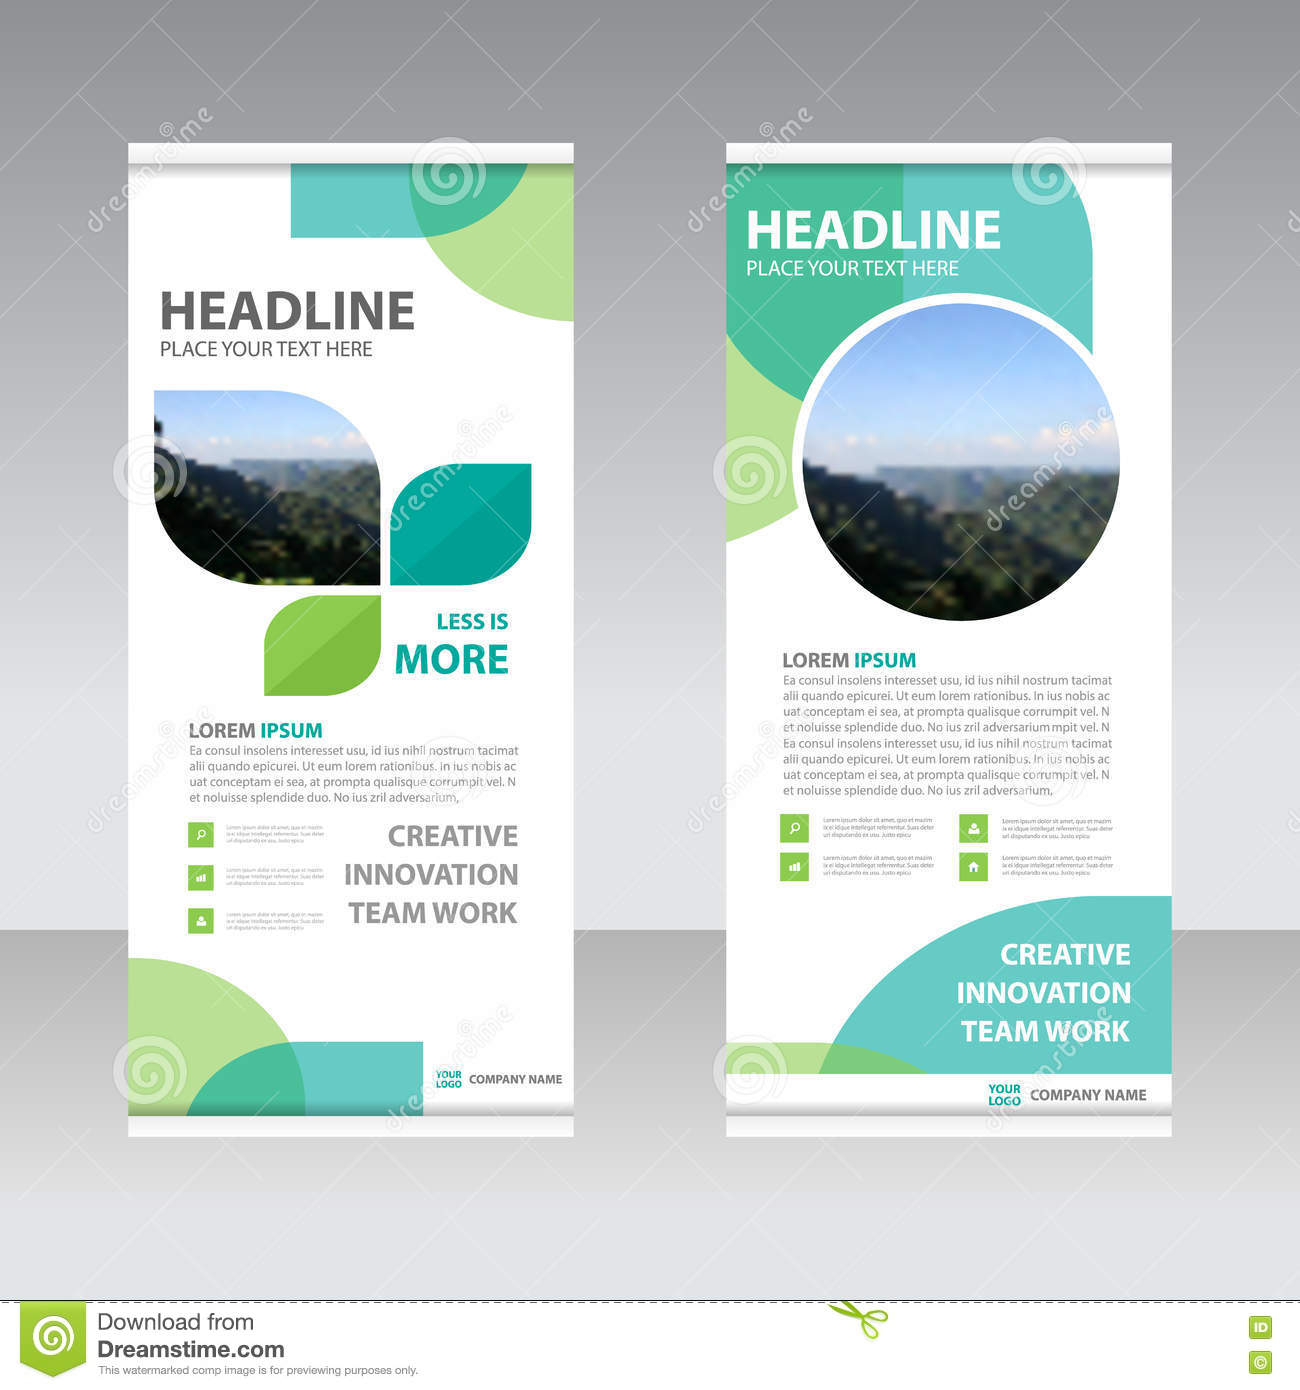 Nice 2 Round Label Template Thin 2014 Printable Calendar Template Clean 2015 Calendar Templates 2015 Calendar Word Template Old 3 Types Of Resume Structures Black3d Text Template Ecology Green Business Roll Up Banner Flat Design Template ,Abst ..